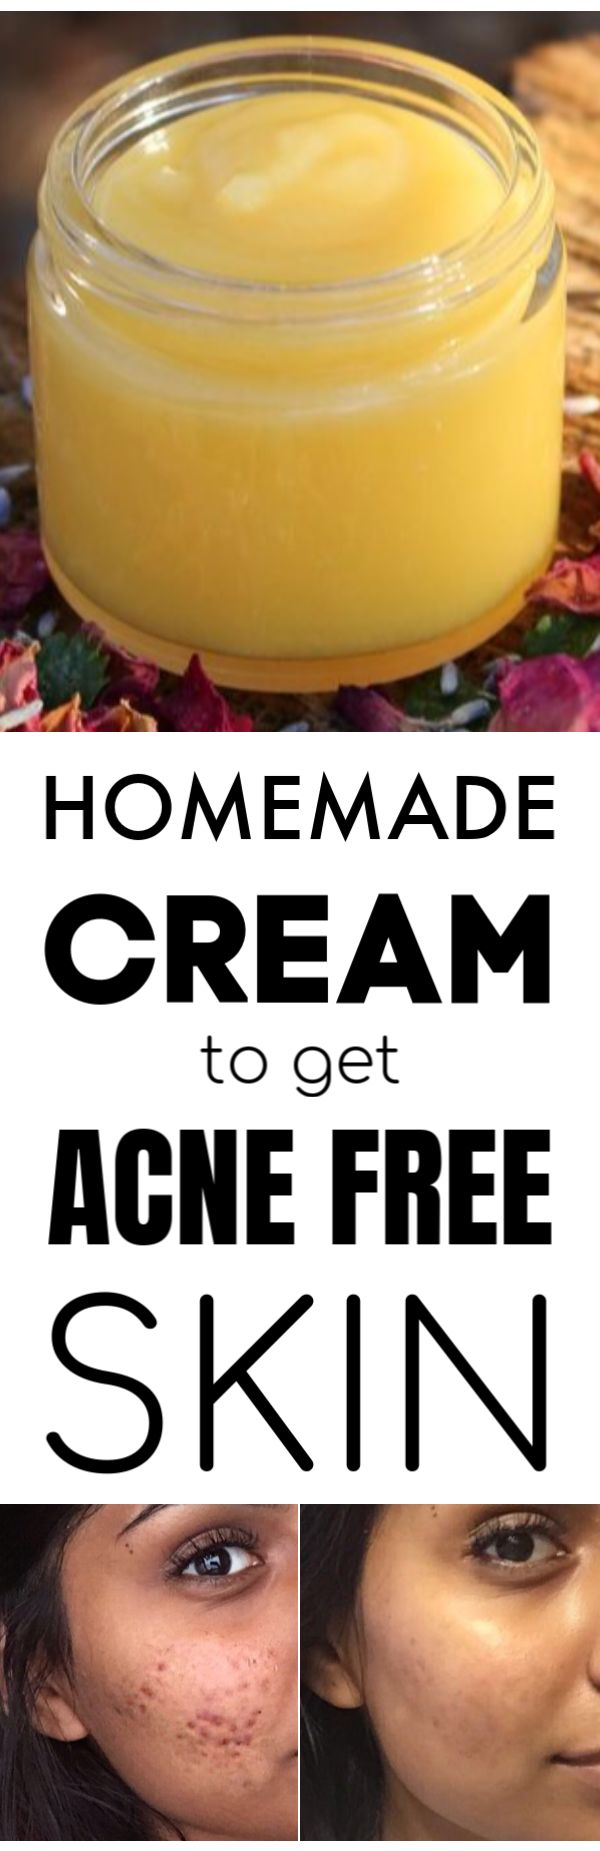 Homemade Acne Treatment Cream for different Skin Types